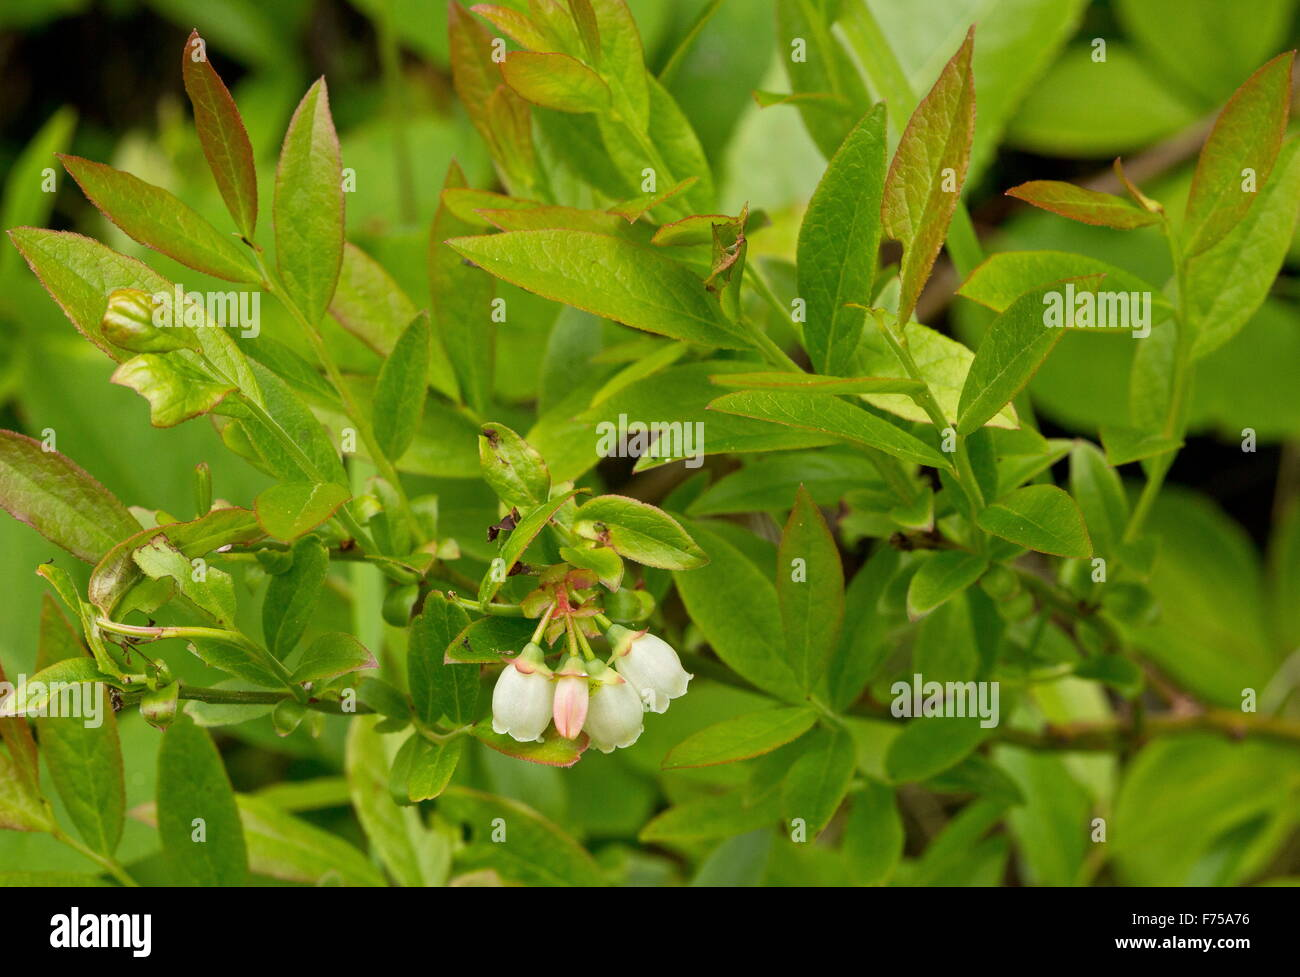 Lowbush blueberry in flower. Newfoundland. - Stock Image